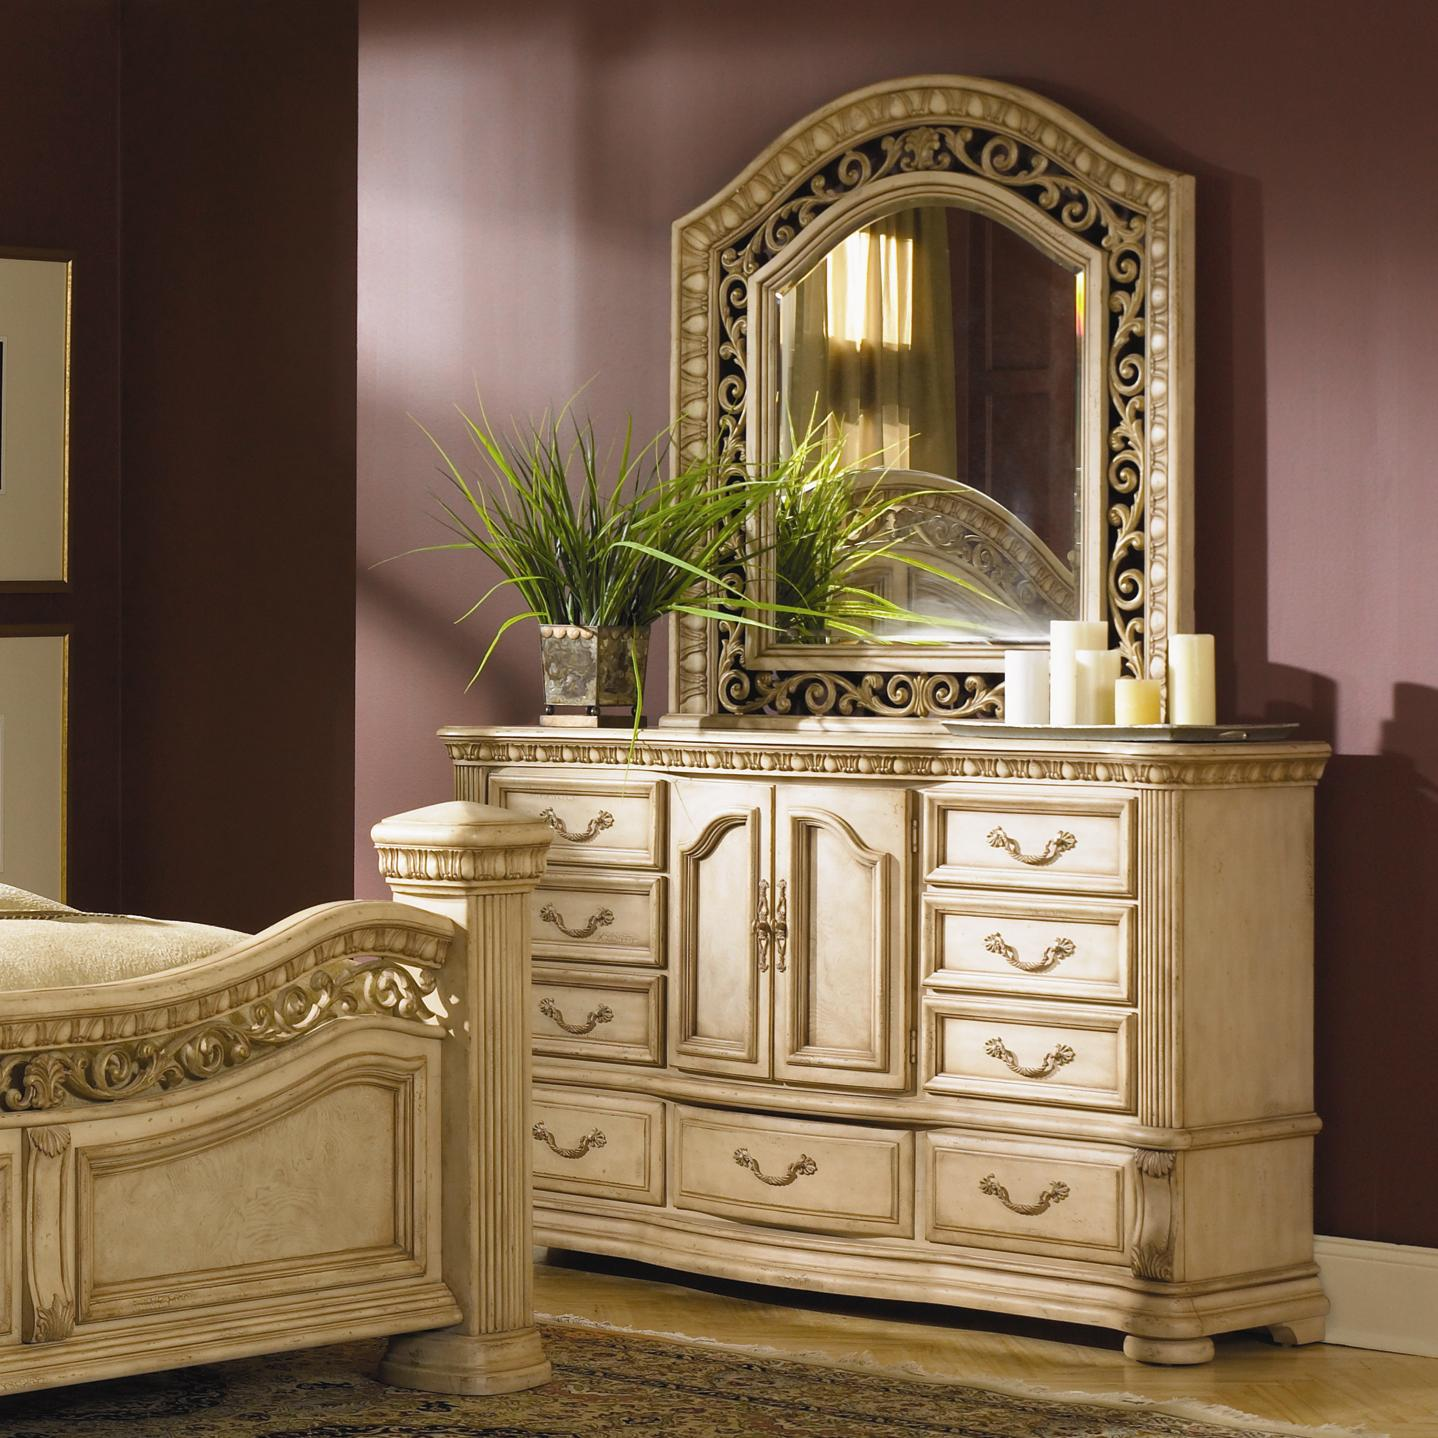 Flexsteel Wynwood Collection Antiguo Blanco Dresser and Mirror Combination Set - Item Number: 1636-62+1636-81